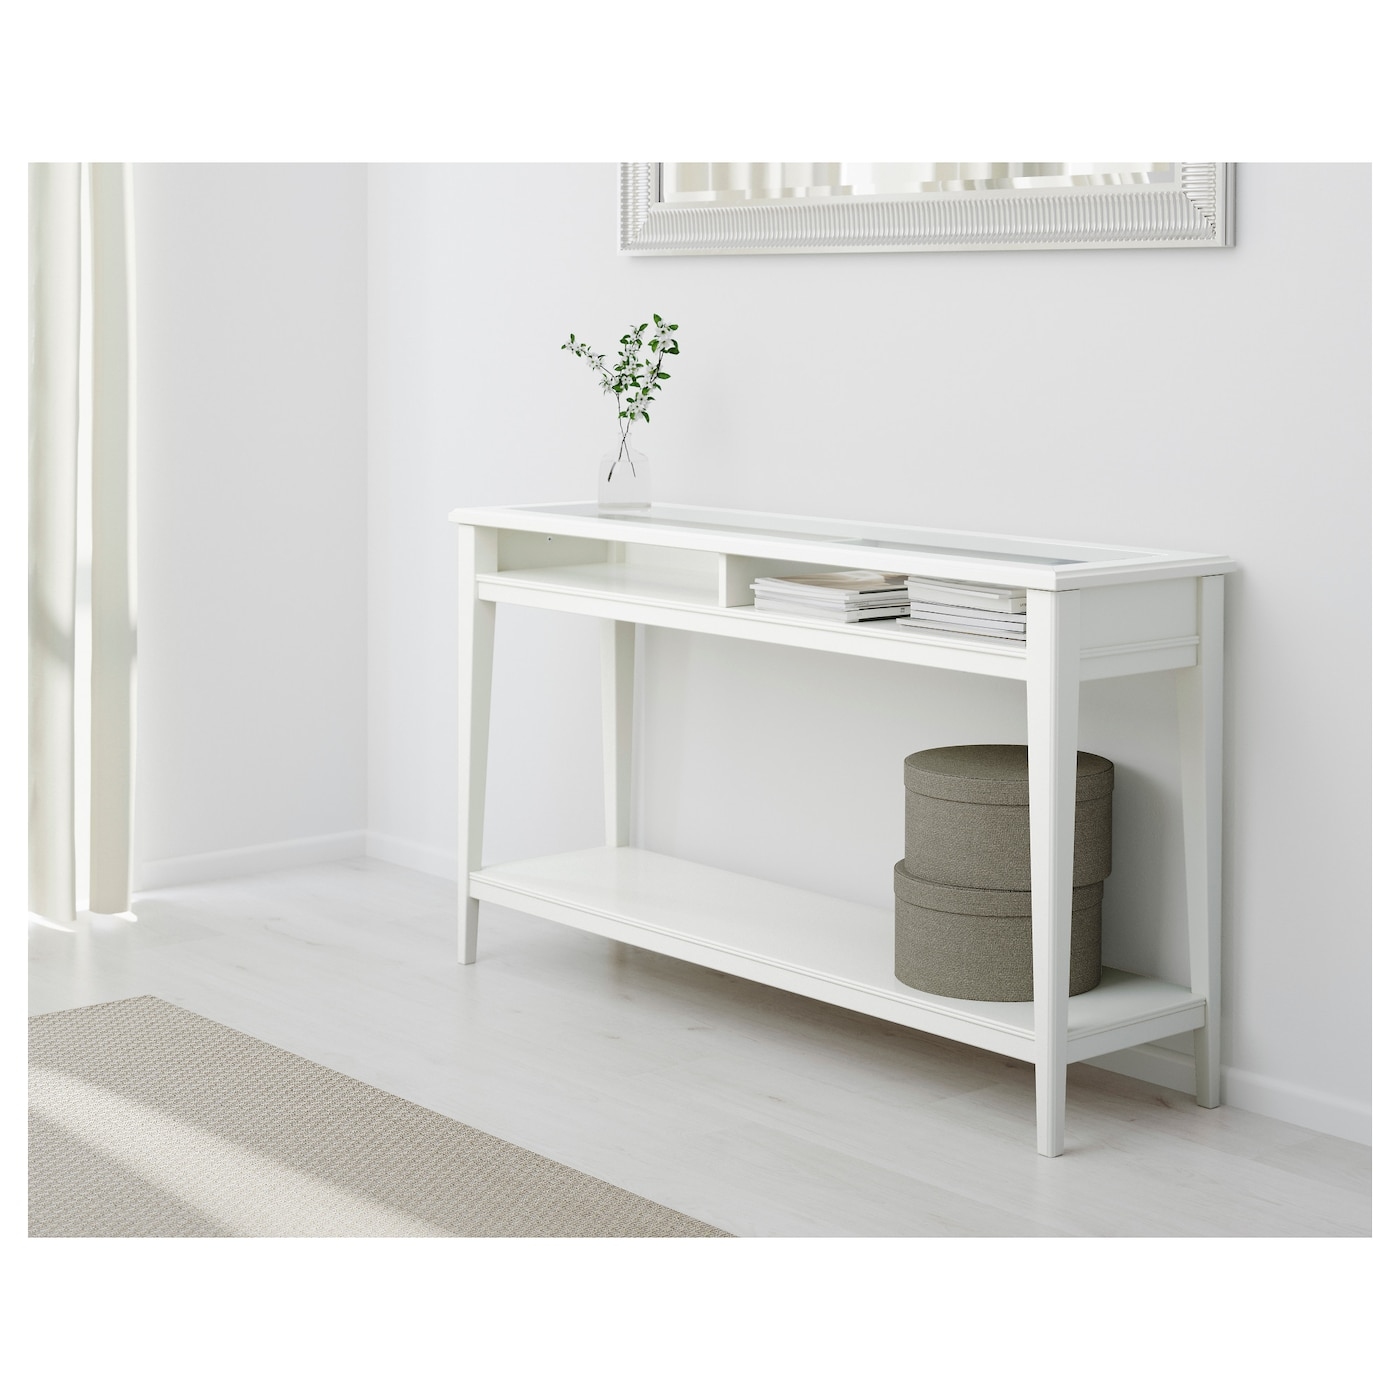 sofa table with storage ikea. IKEA LIATORP Console Table Practical Storage Space Underneath The Top. Sofa With Ikea